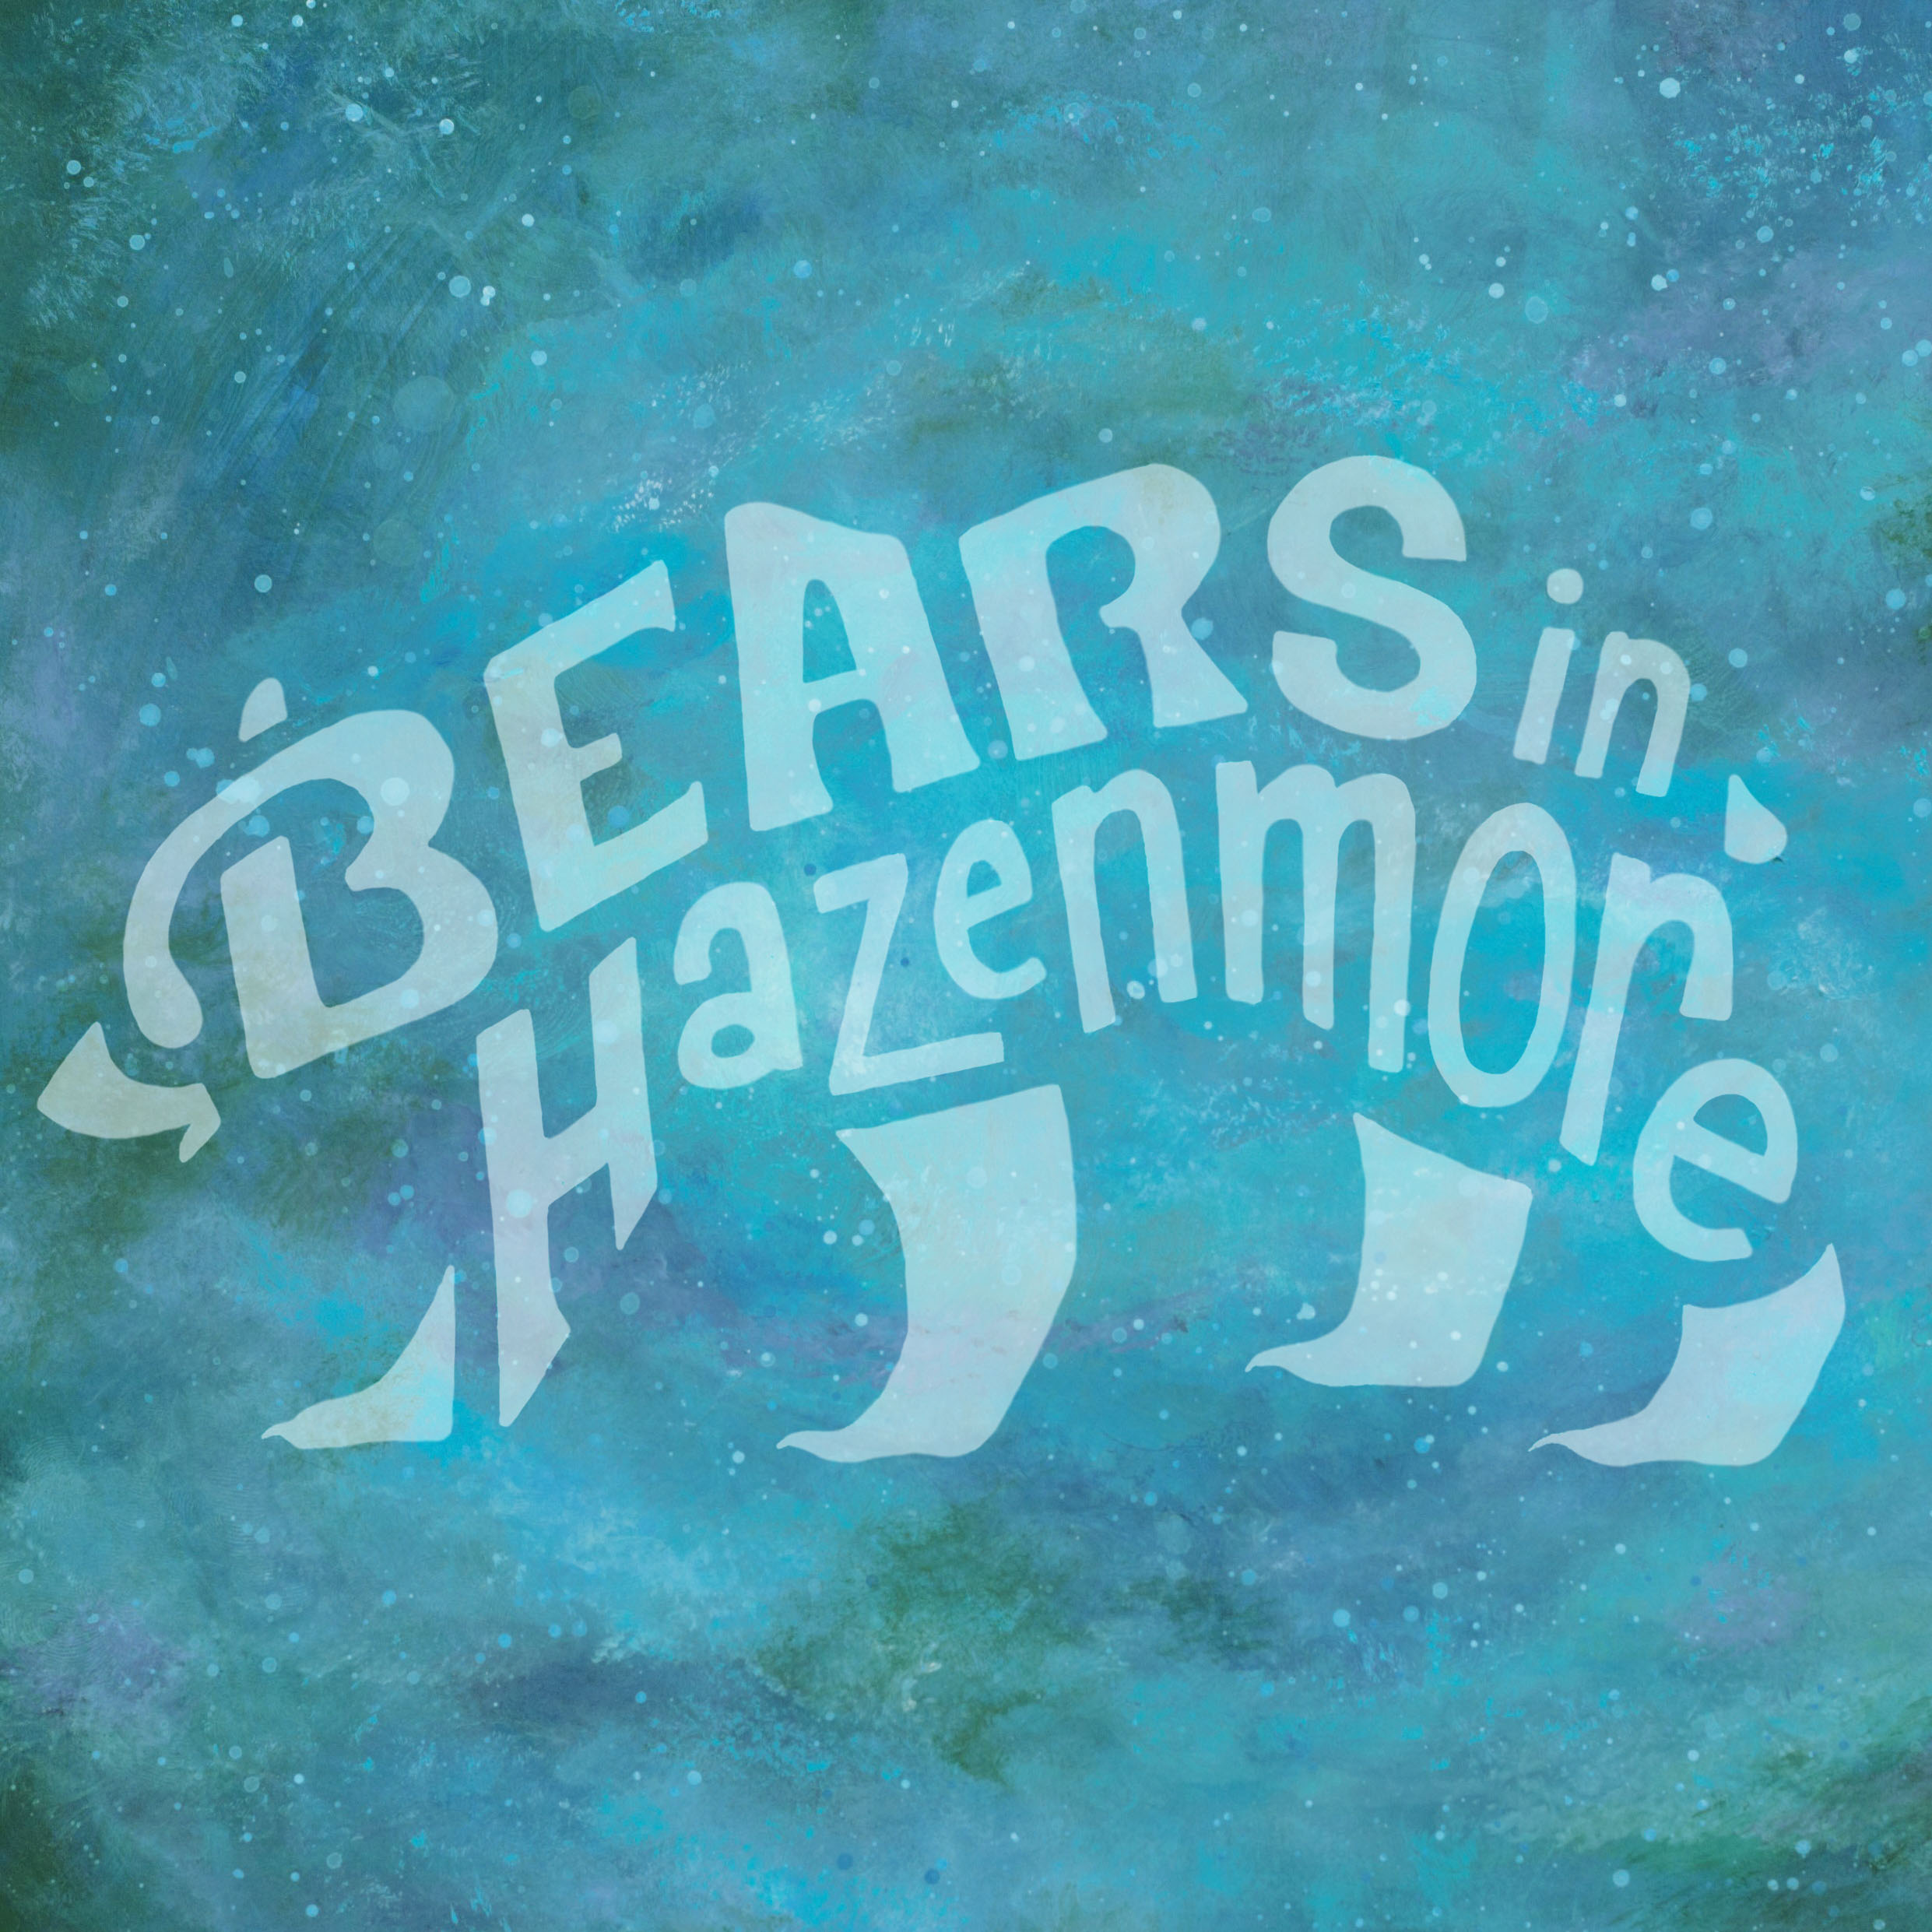 Bears in Hazenmore Text Bear Image